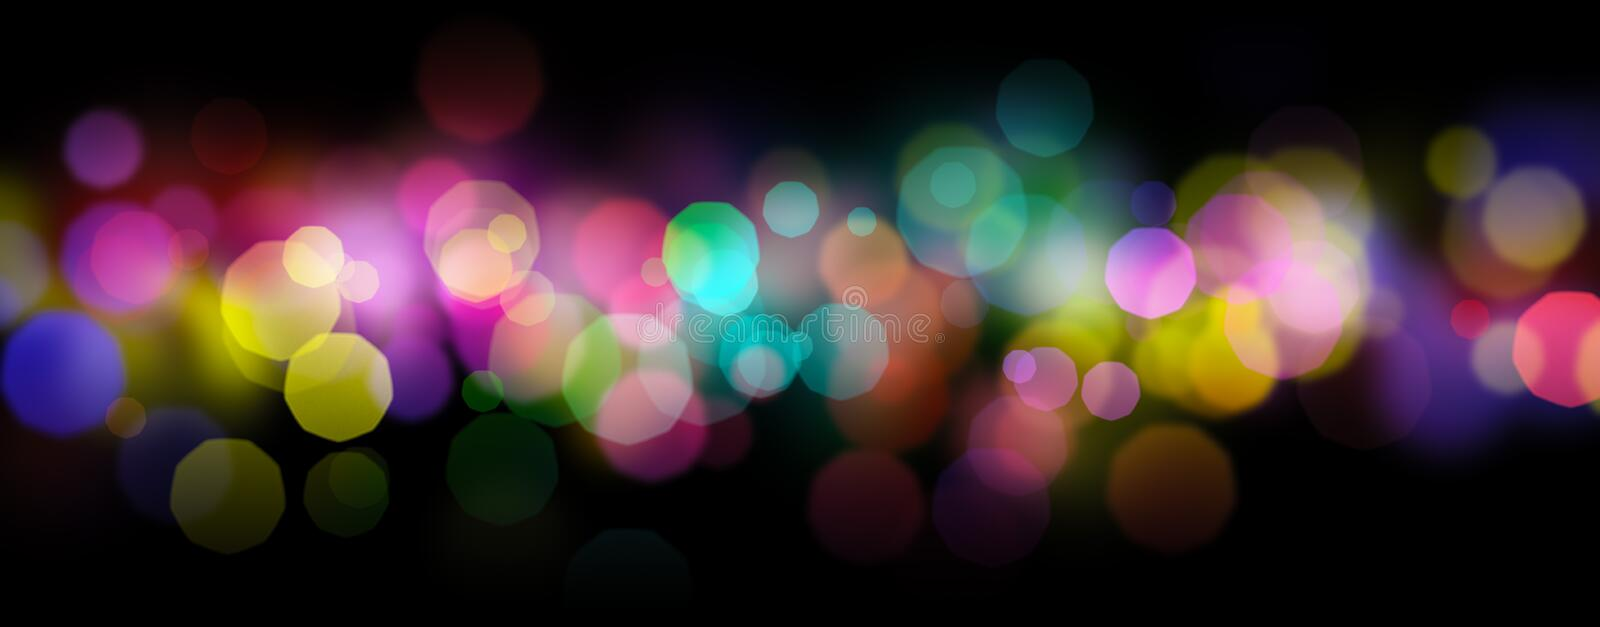 Rainbow colored shiny defocused abstract light bokeh background. Over black stock illustration